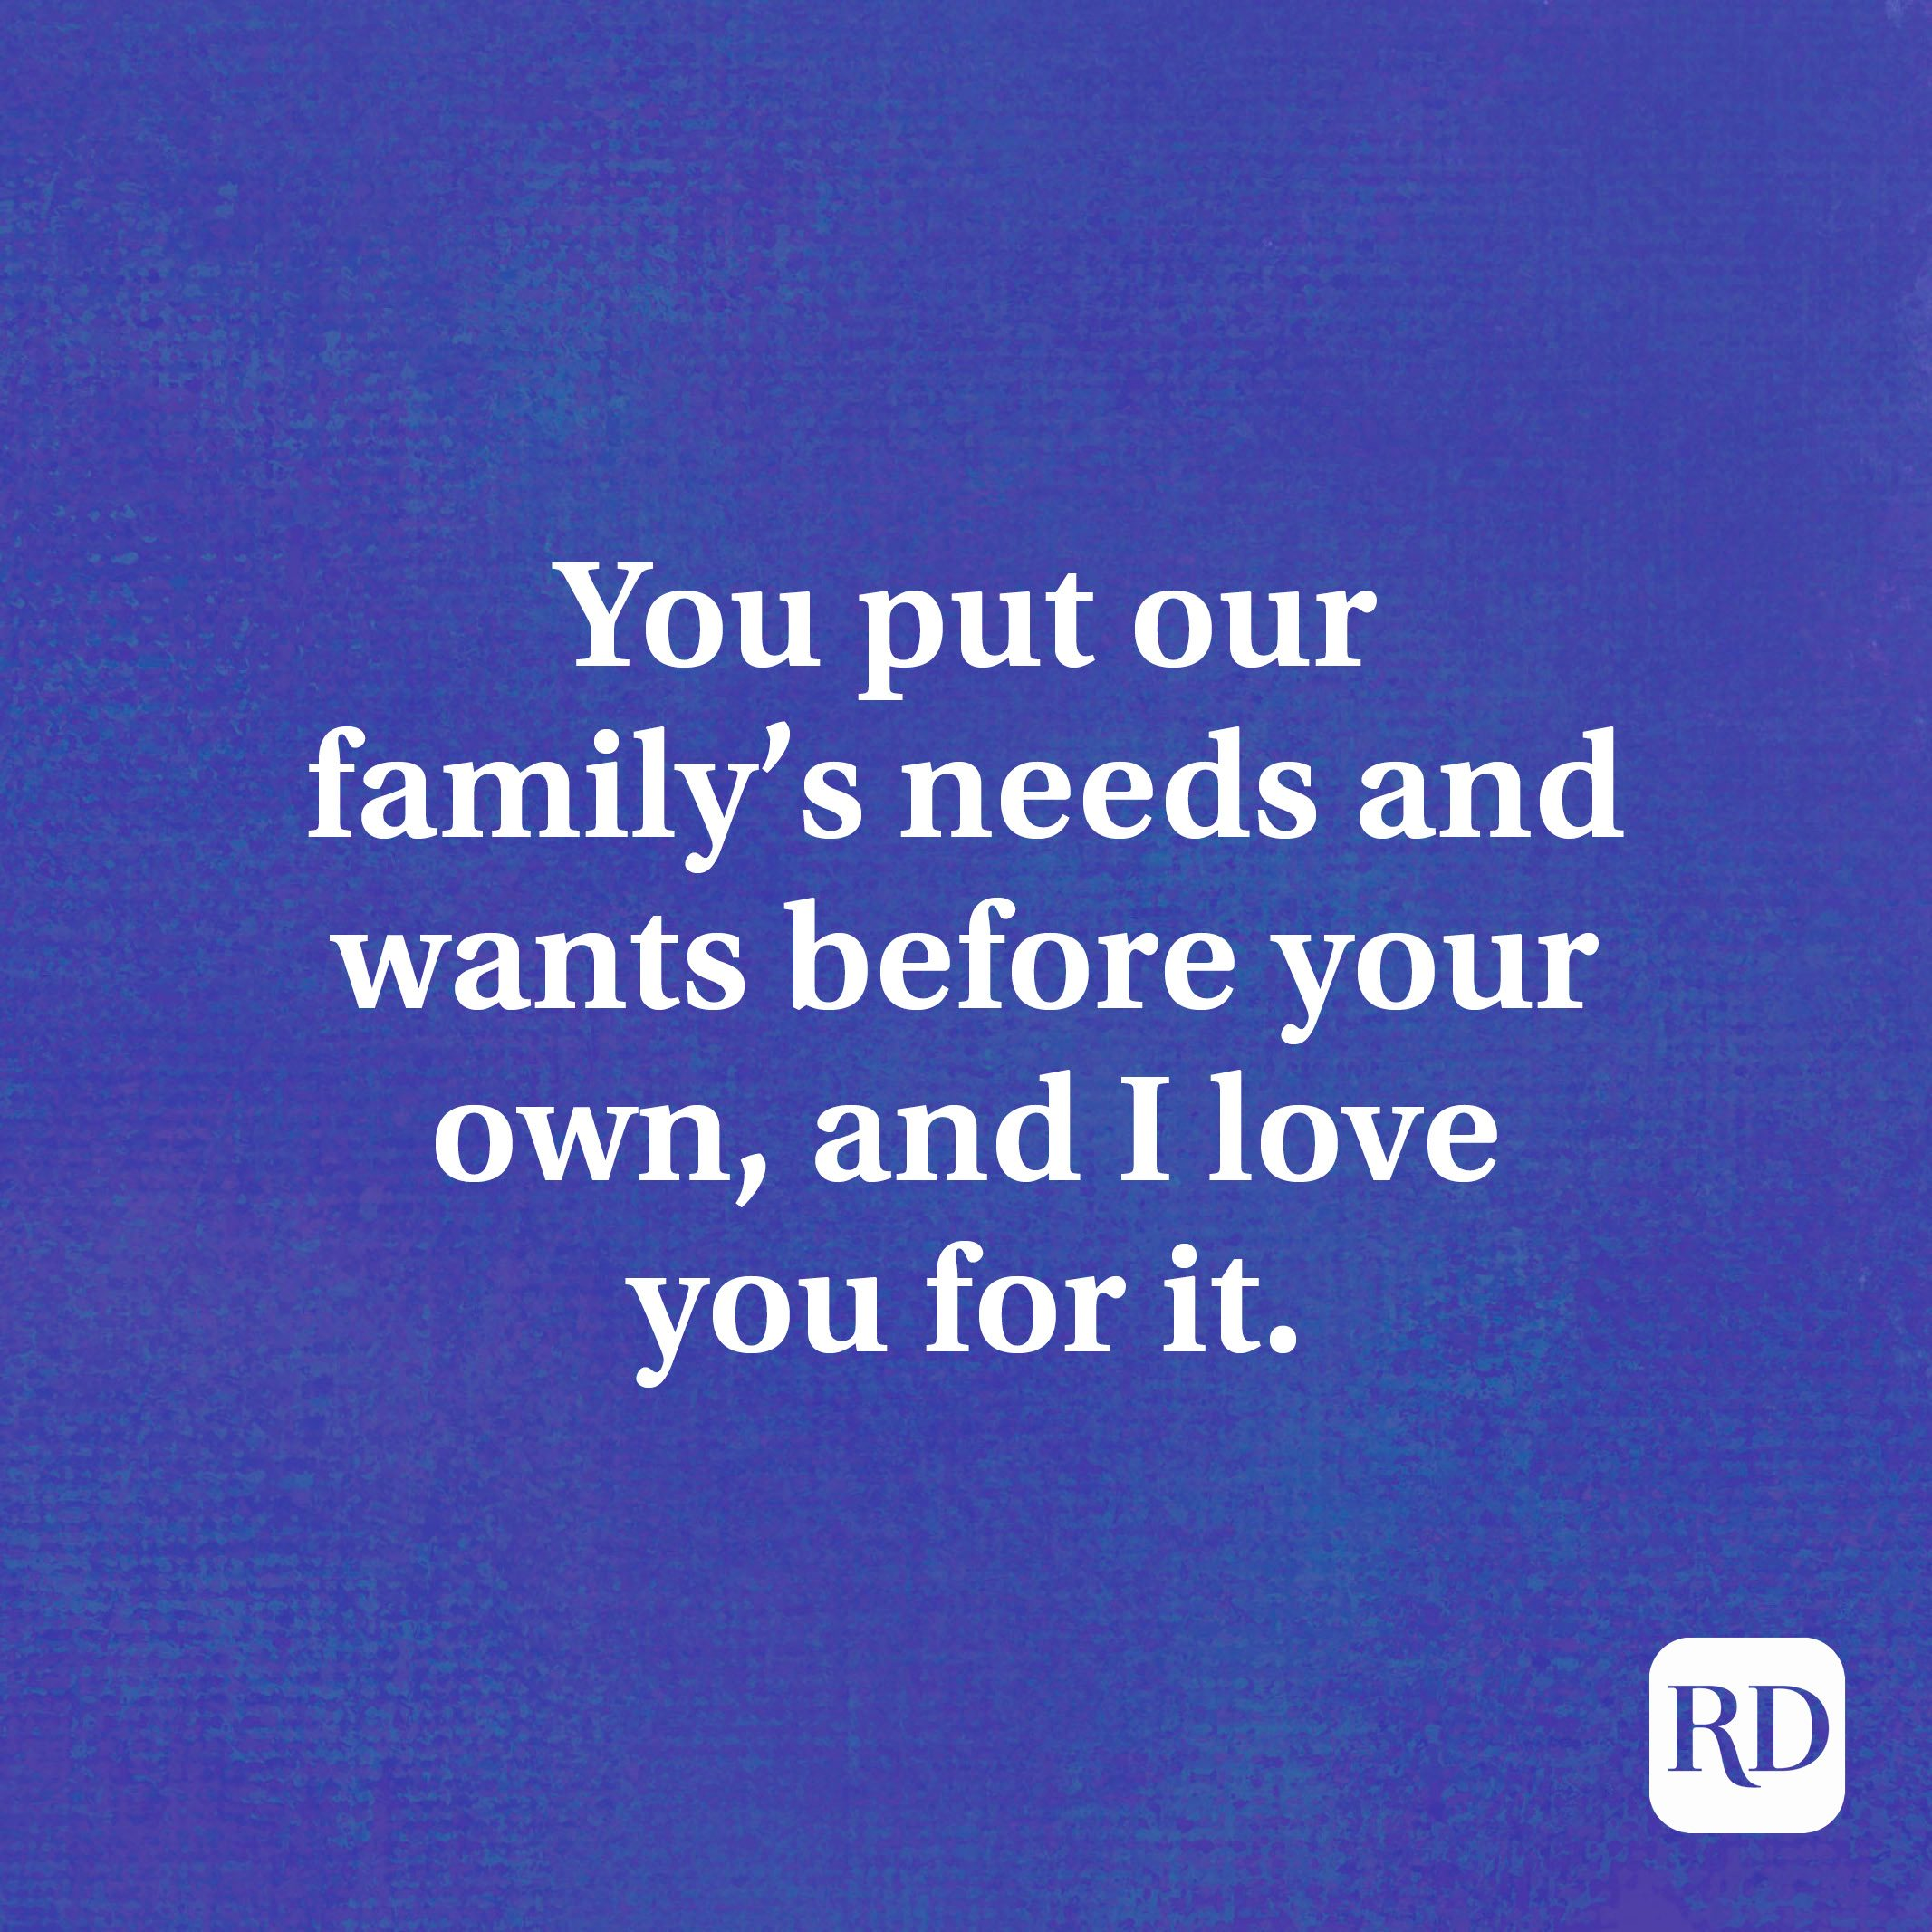 You put our family's needs and wants before your own, and I love you for it.